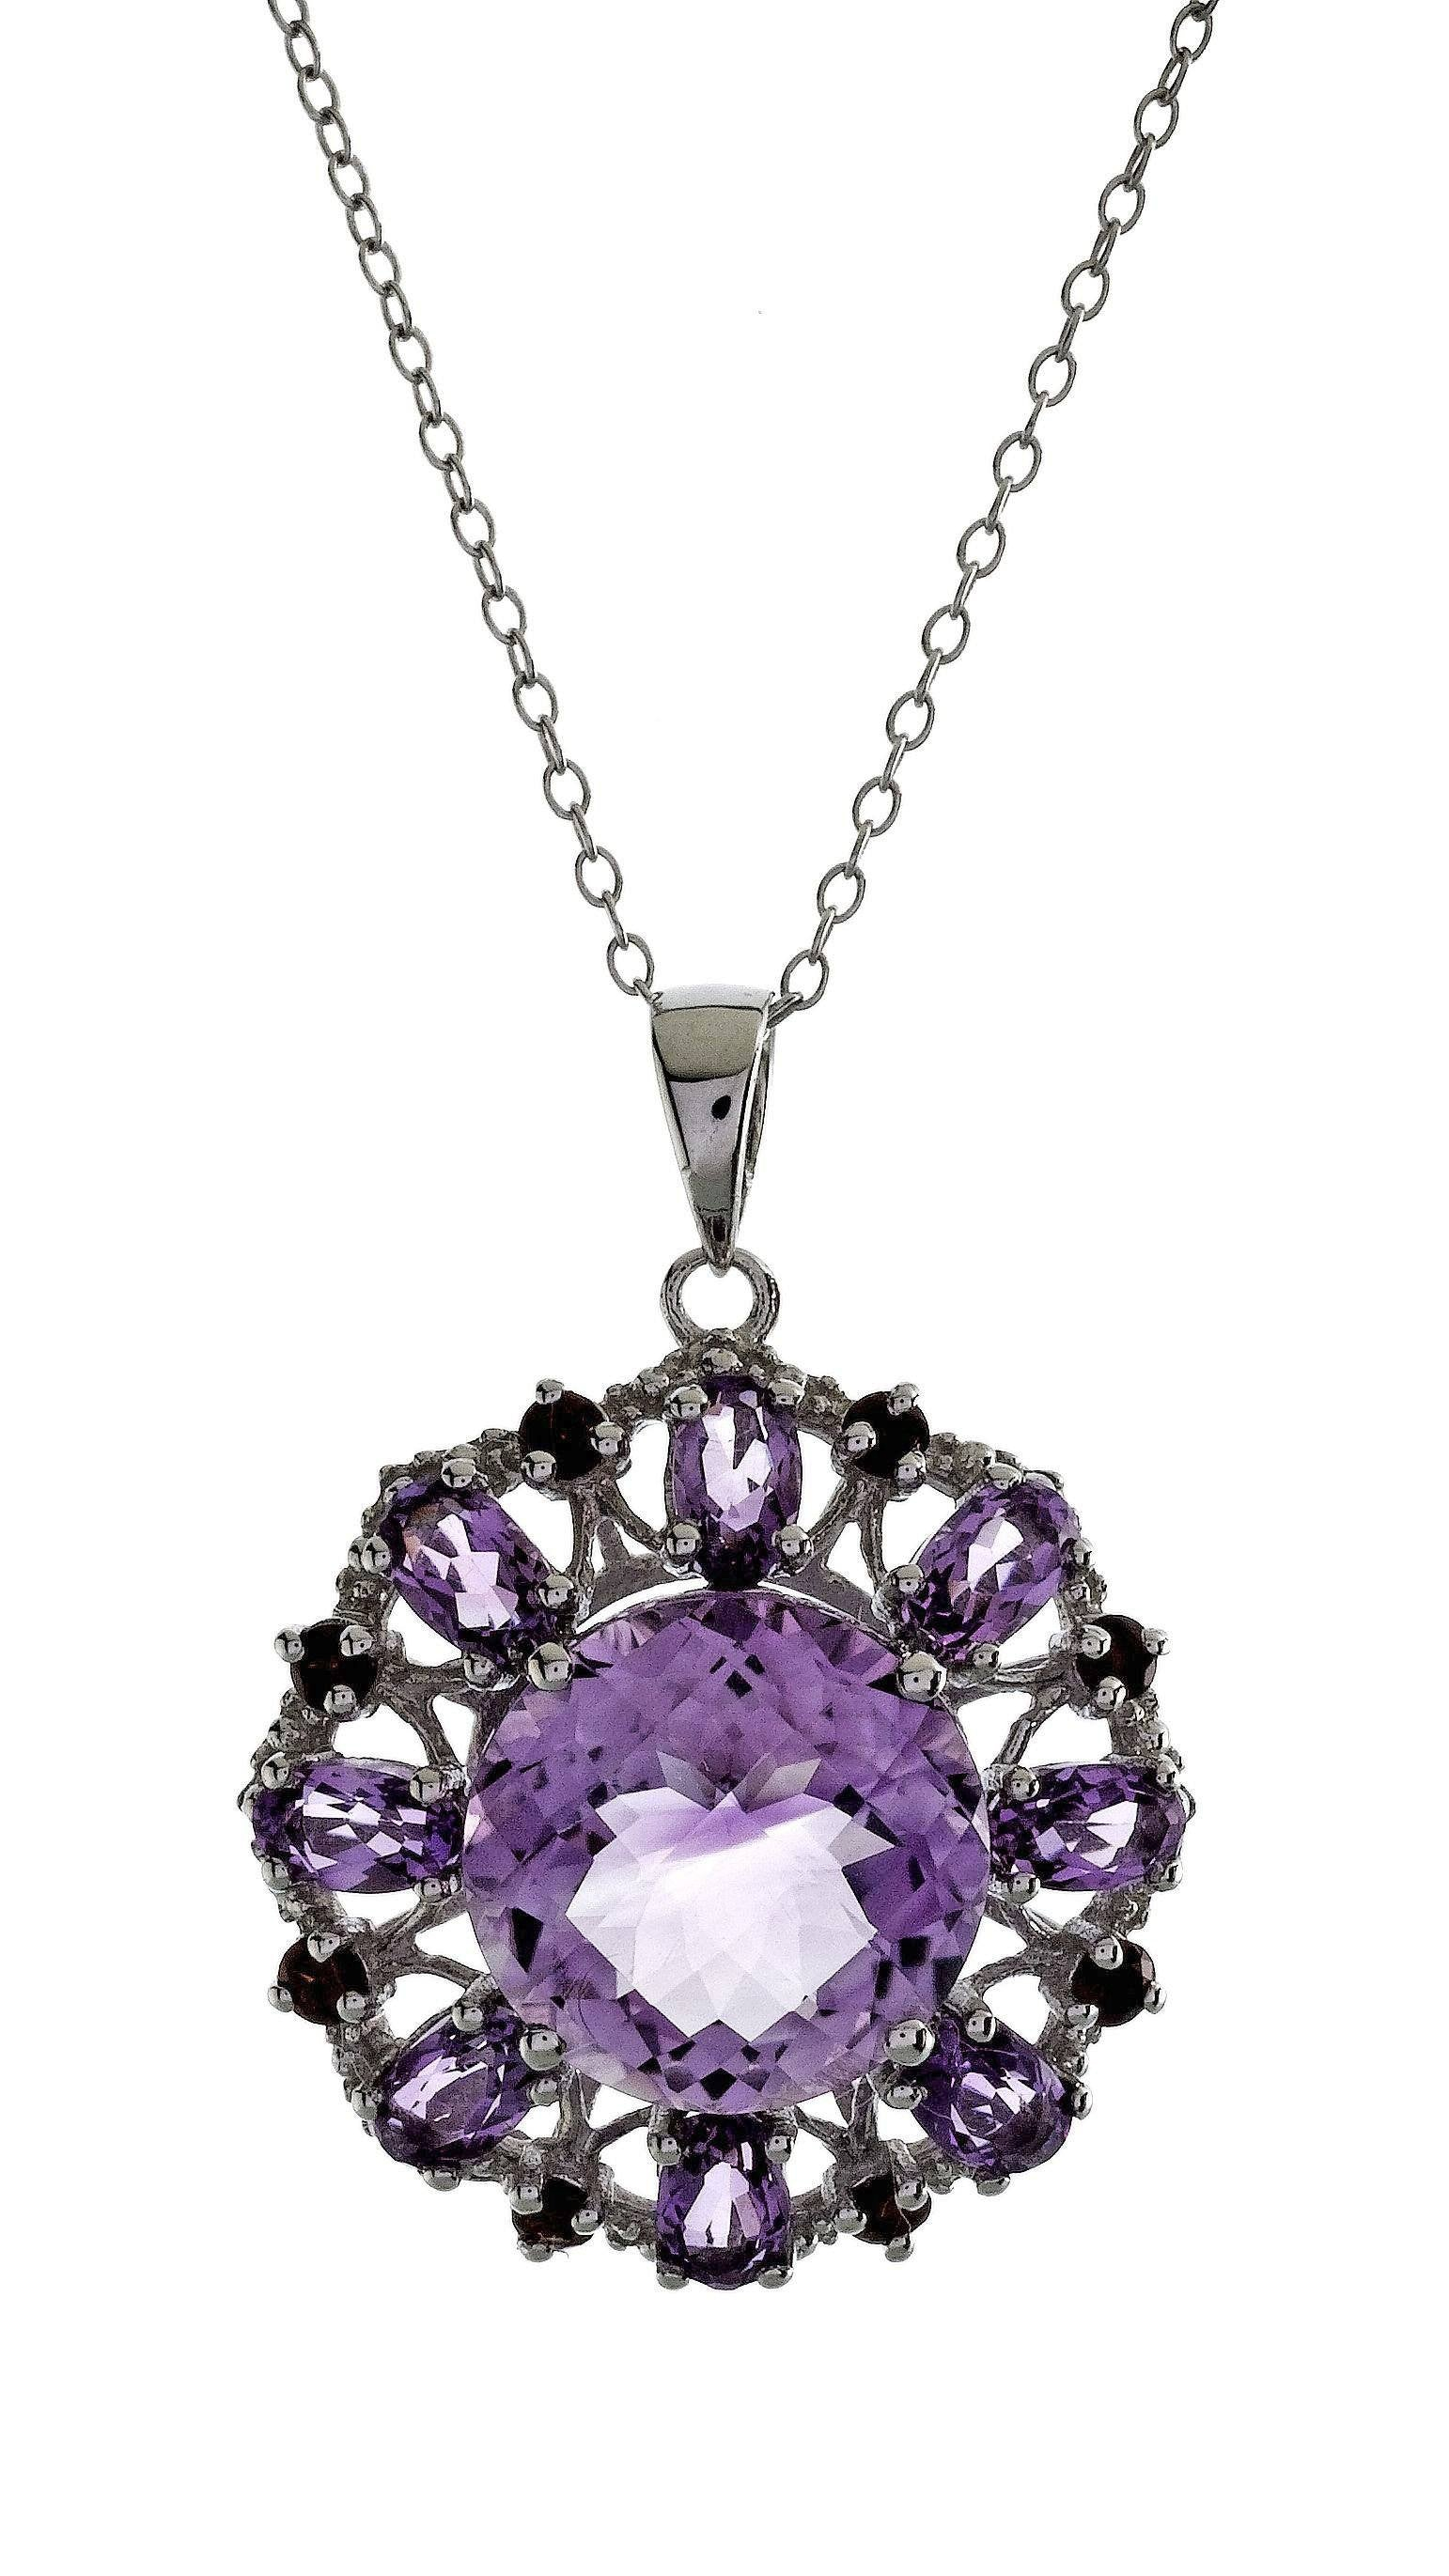 "7.75 Carat Genuine Pink Amethyst Pendant in Sterling Silver with 18"" Chain"